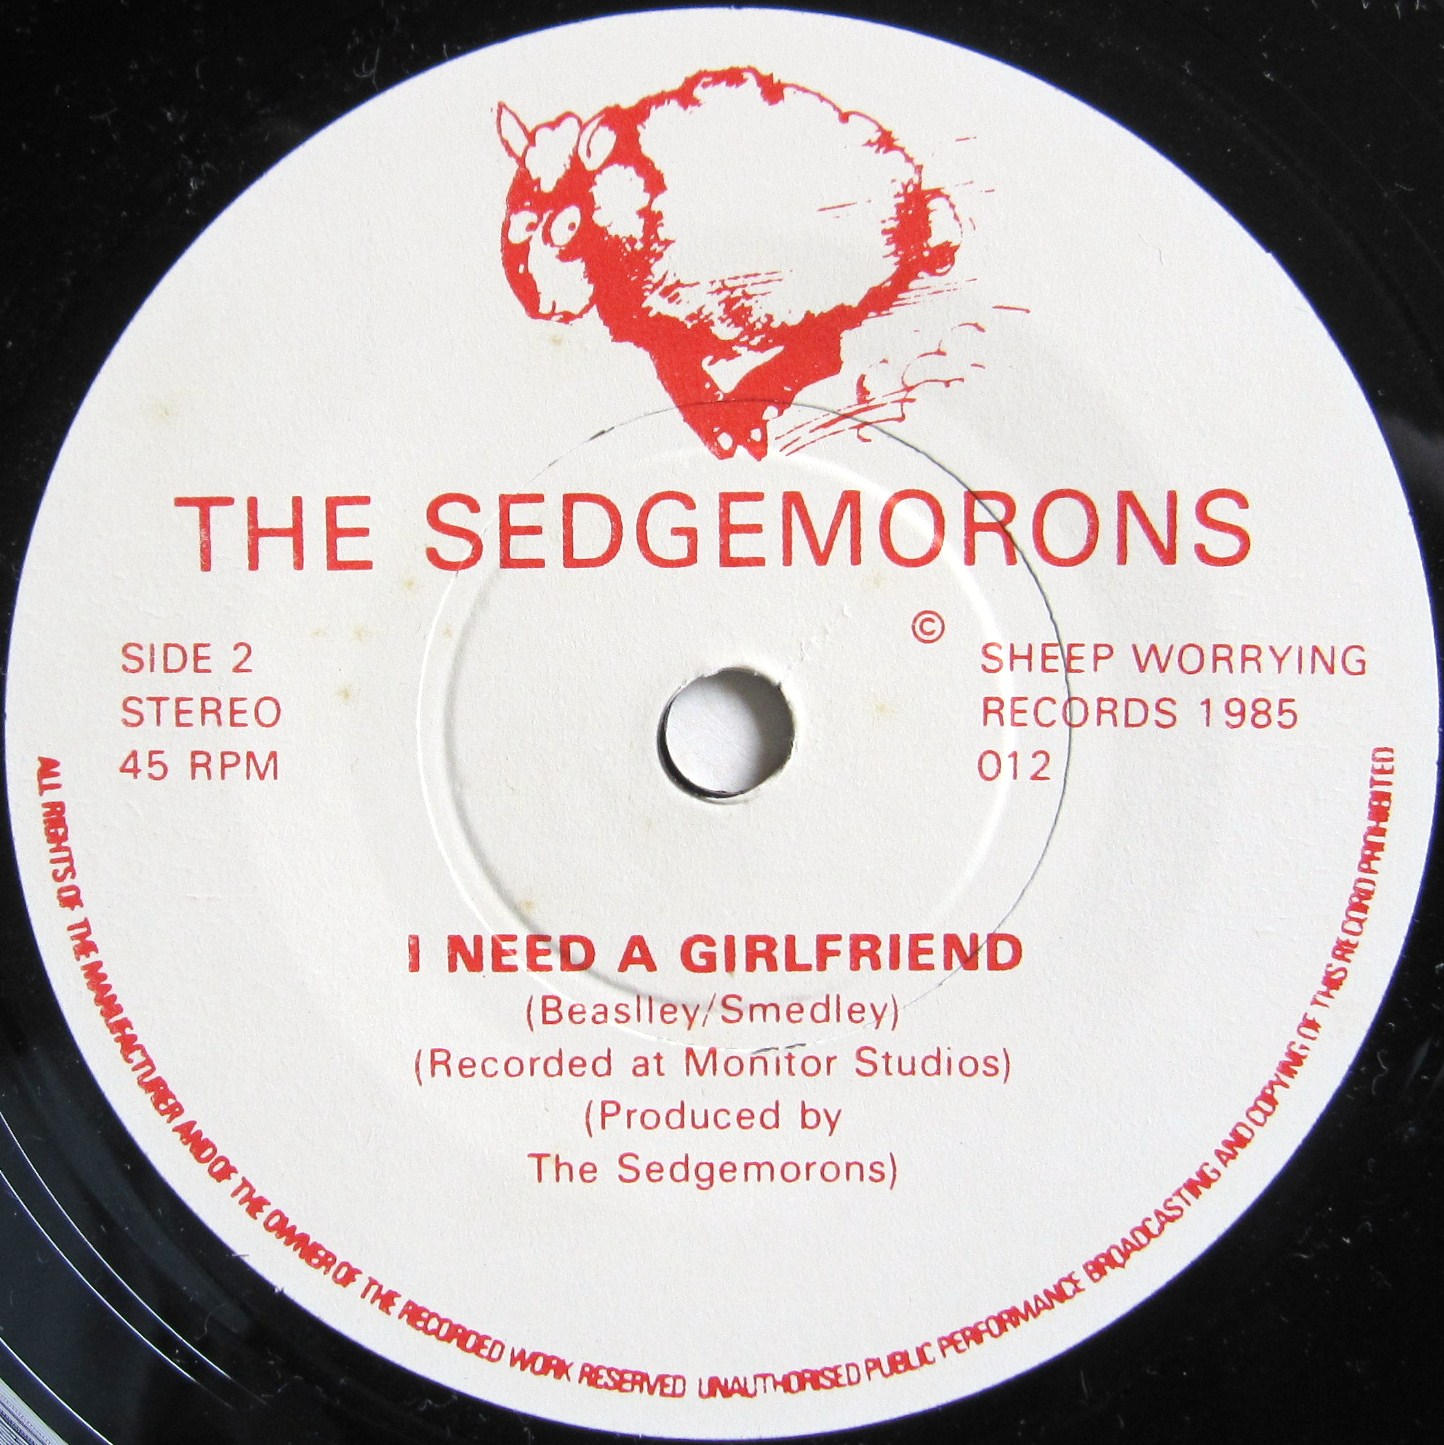 The Sedgemorons - Drop Dead Darling